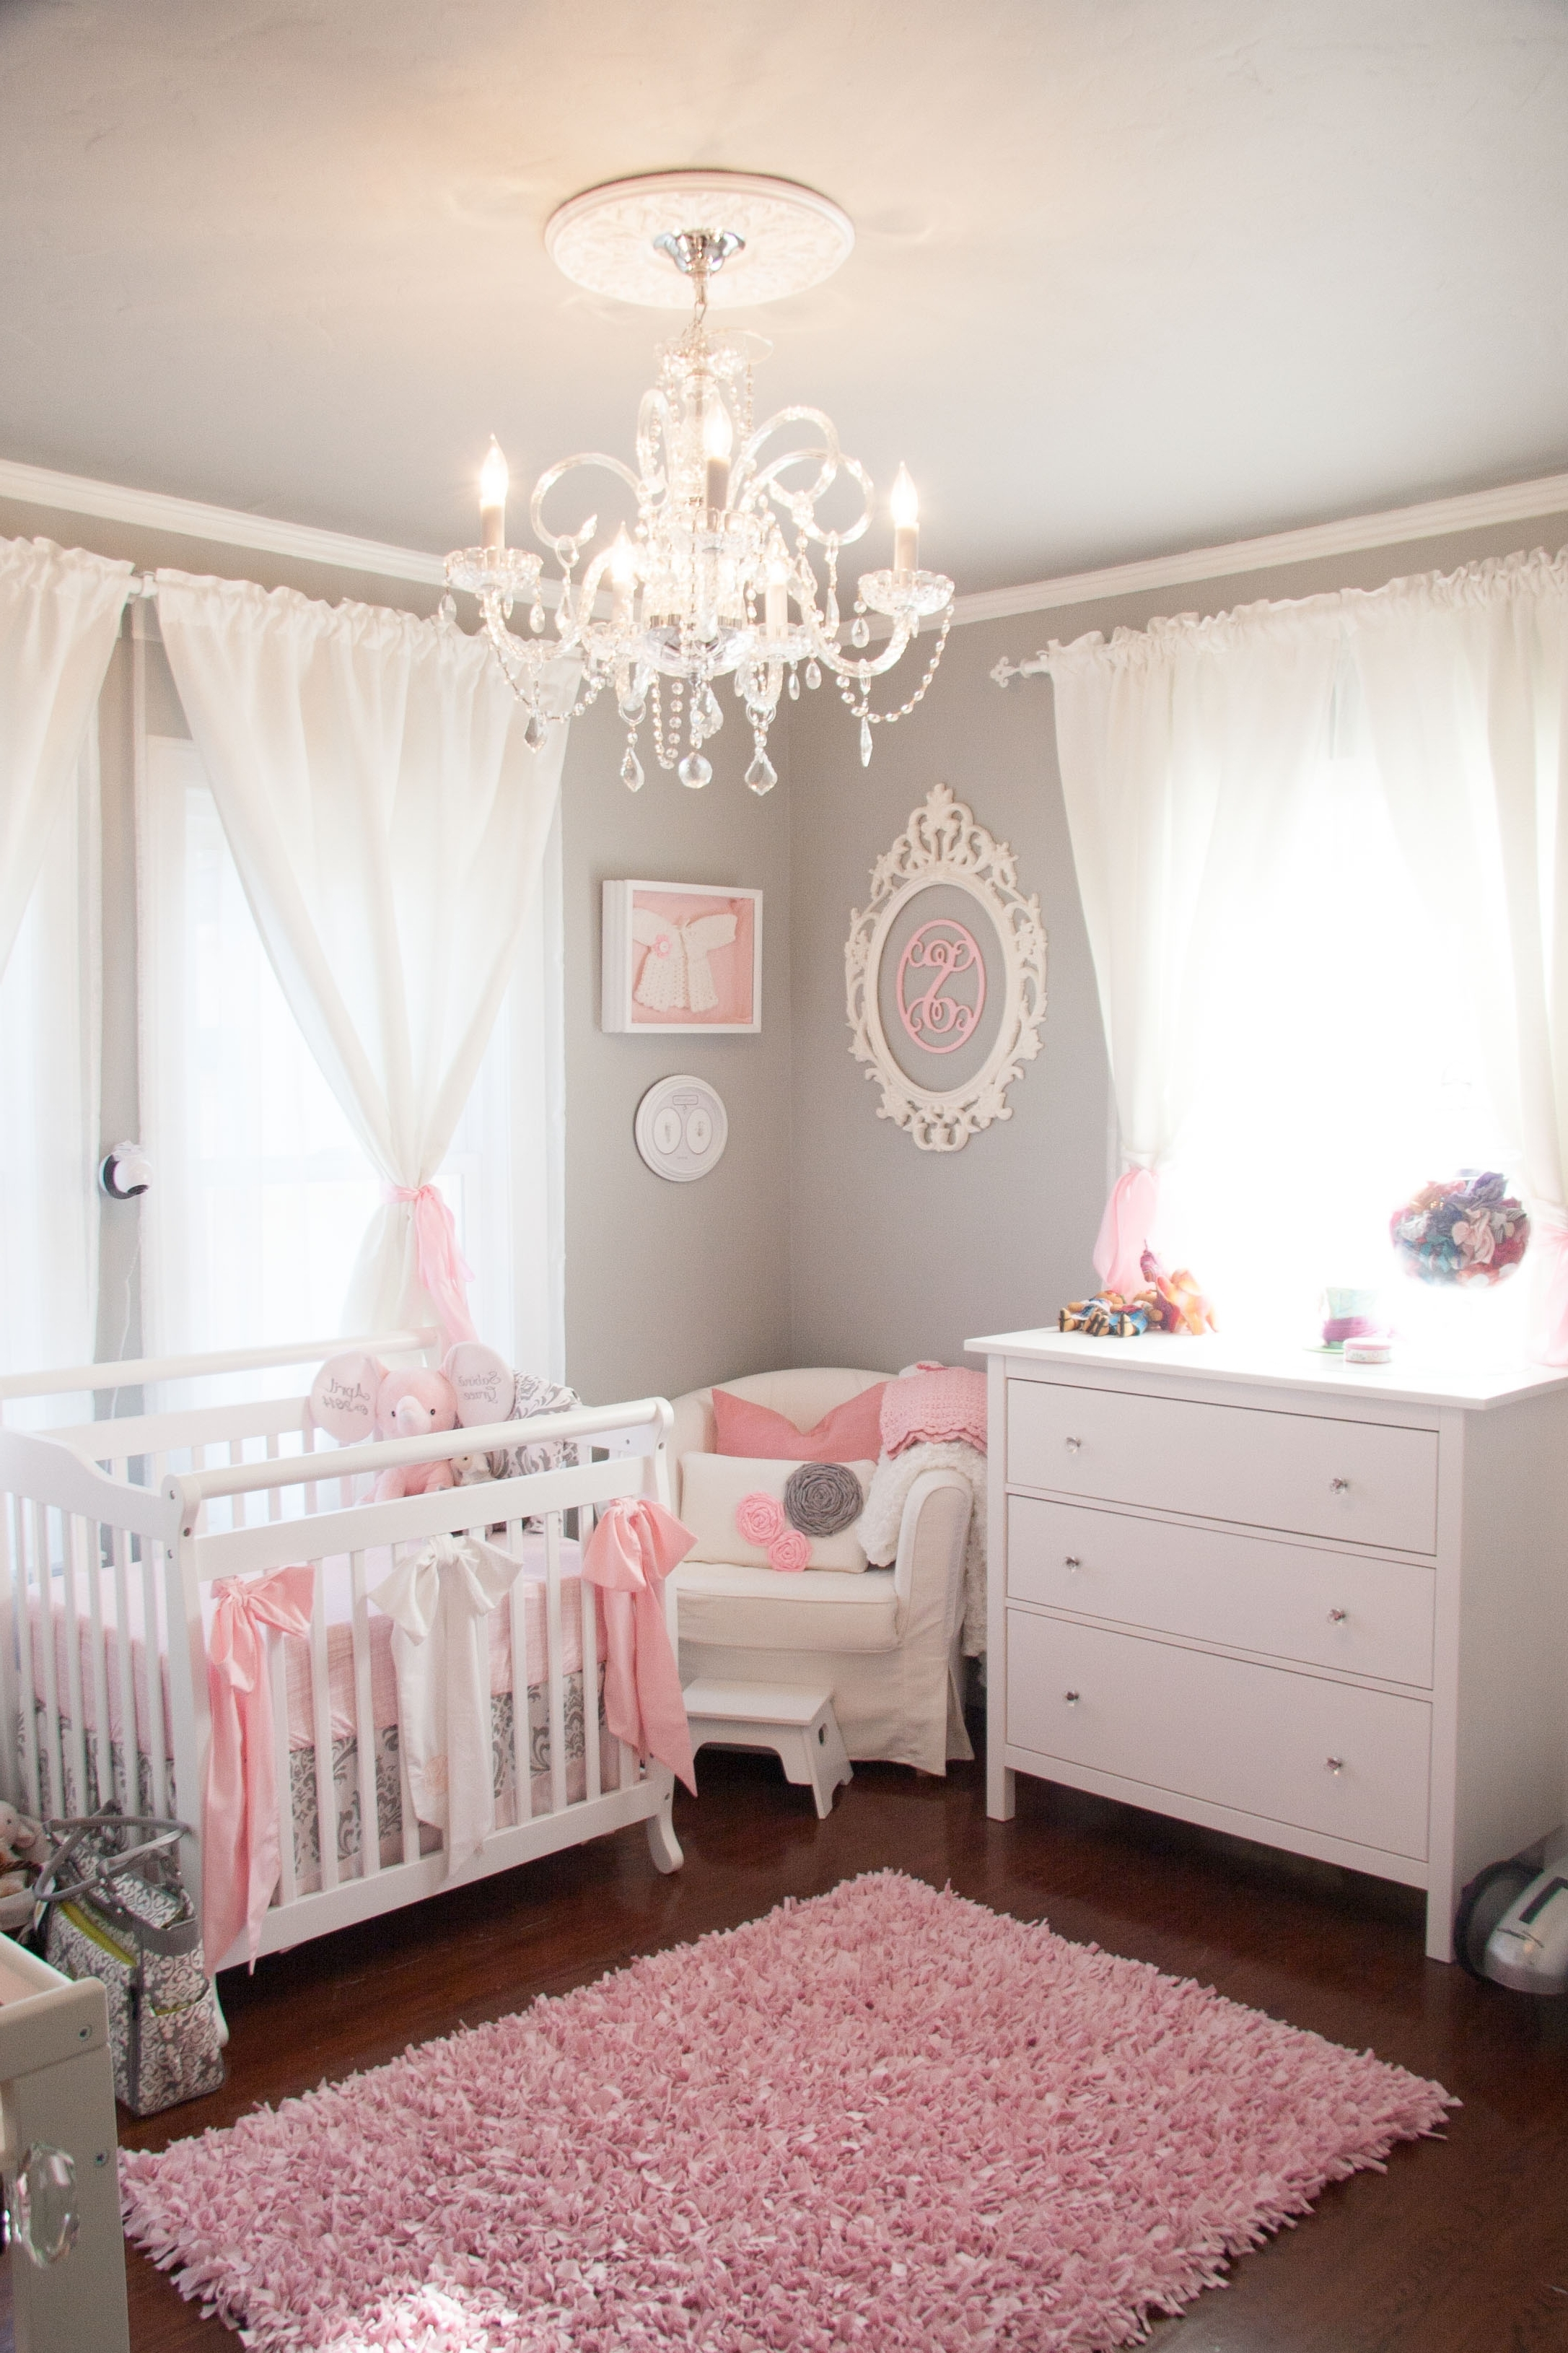 Popular Tiny Budget In A Tiny Room For A Tiny Princess – Project Nursery Regarding Cheap Chandeliers For Baby Girl Room (View 19 of 20)